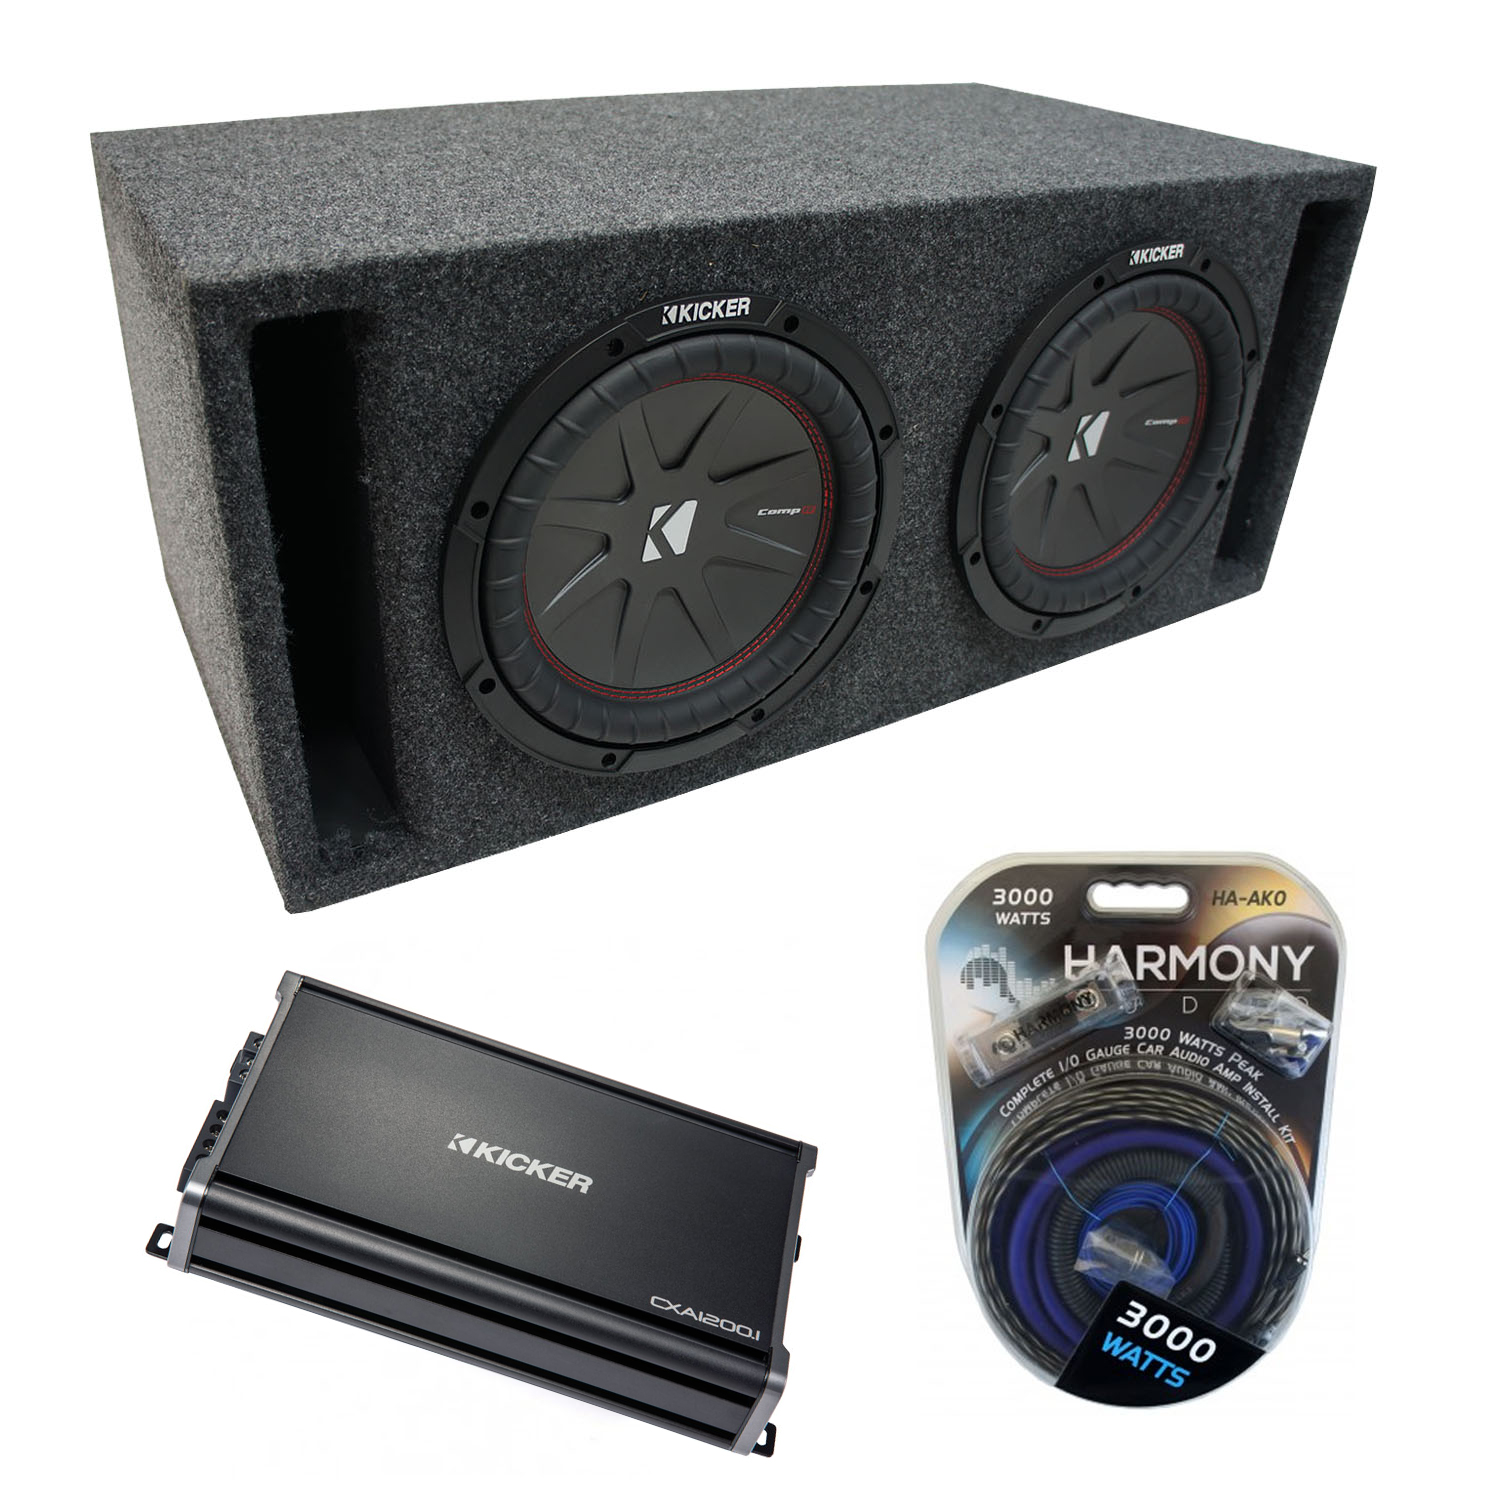 "Universal Car Stereo Slotted S Port Dual 12"" Kicker CompR CWR12 Sub Box Enclosure & CX1200.1 Amp"